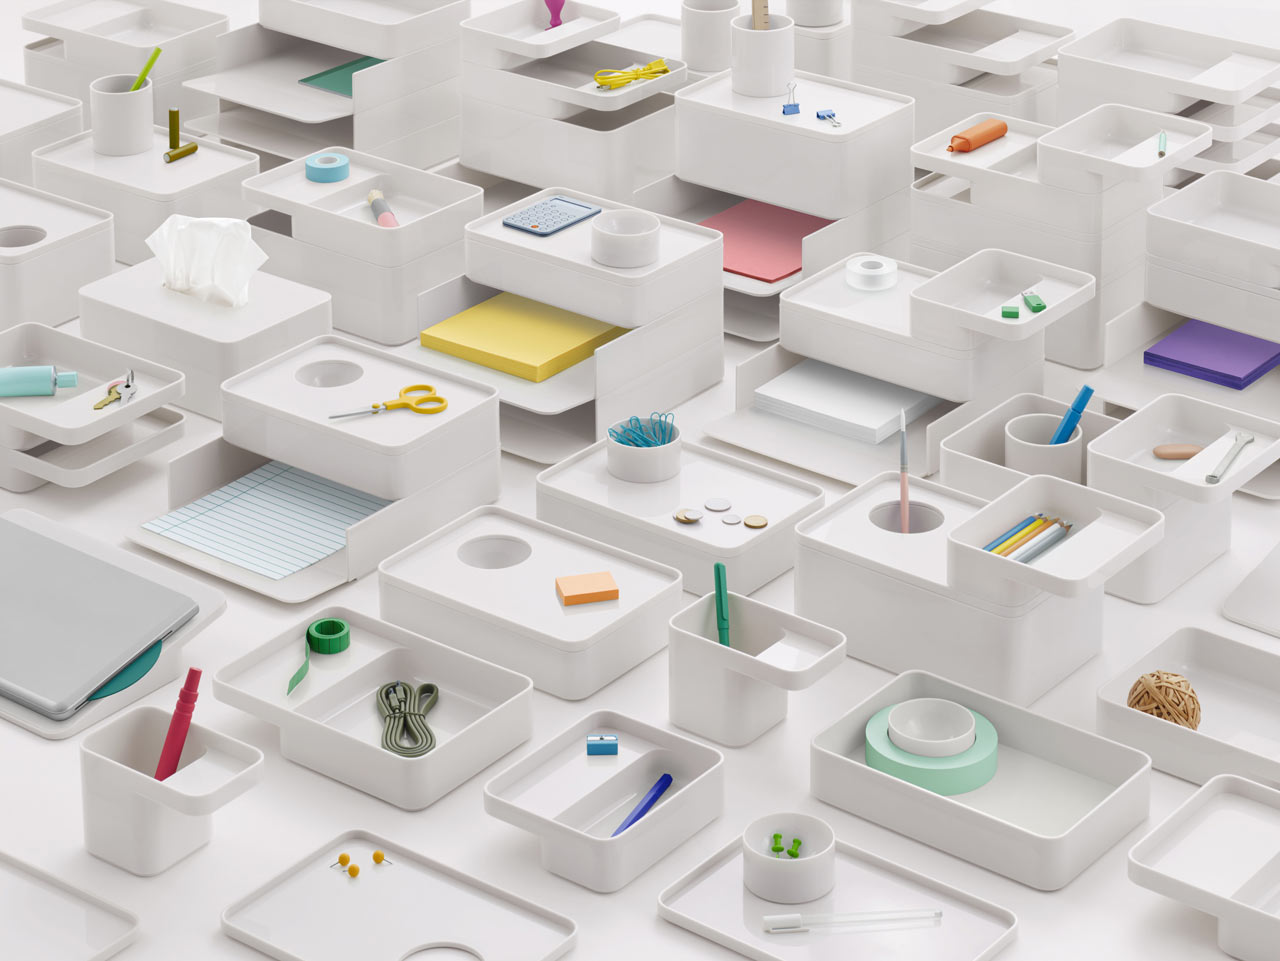 Formwork Desk Accessories by Industrial Facility for Herman Miller